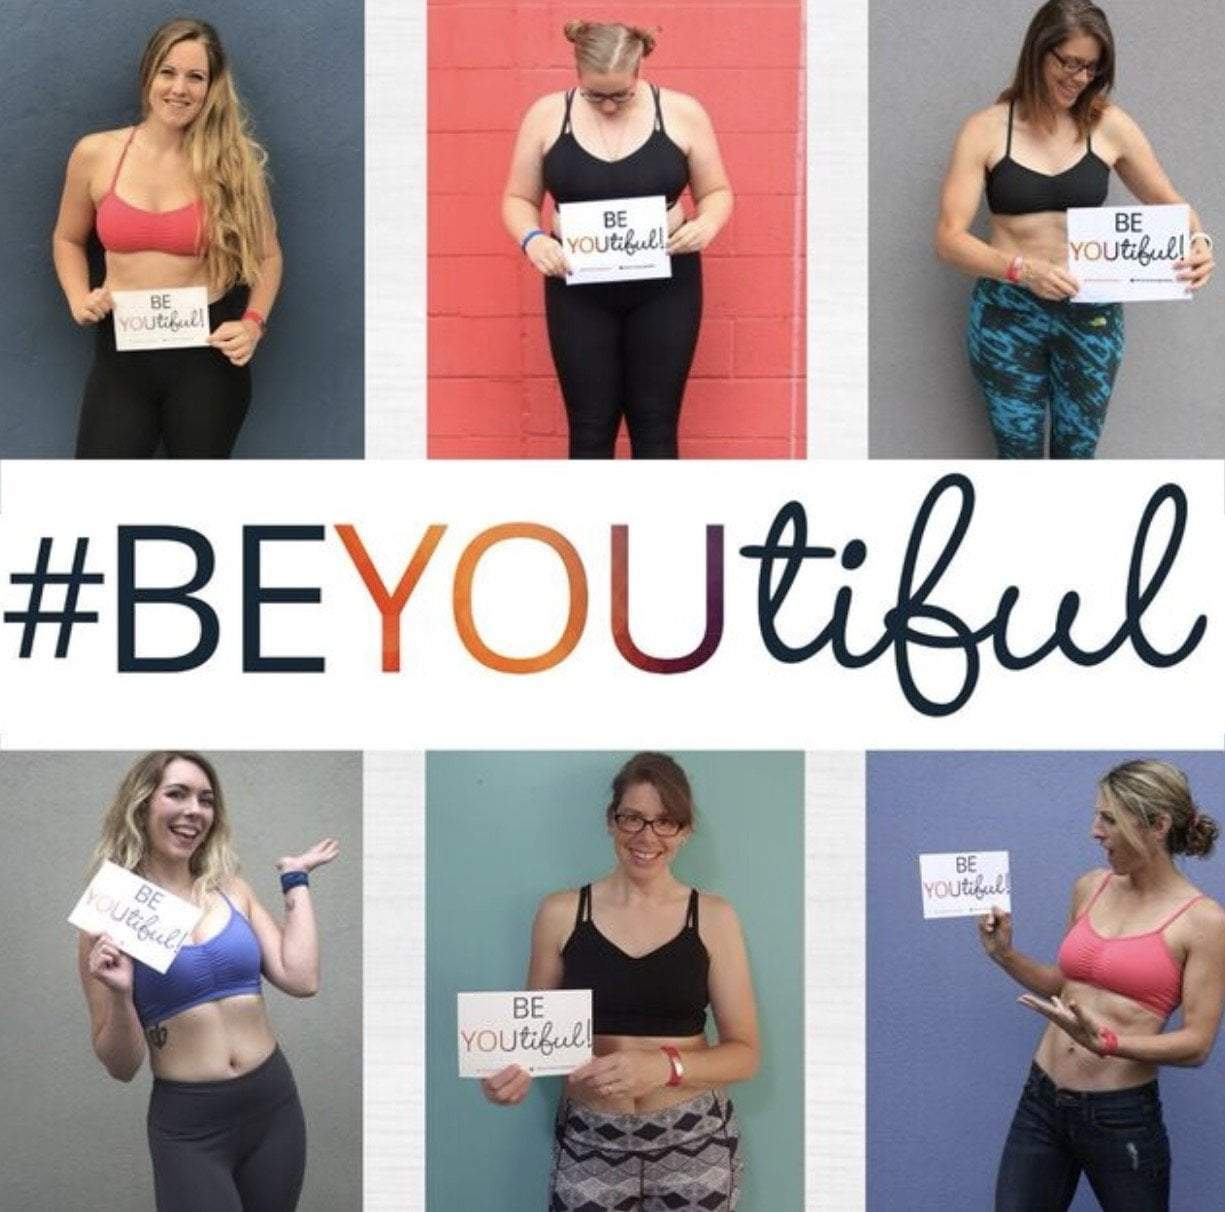 BeYOUtiful - Self-love and Self-Acceptance Movement